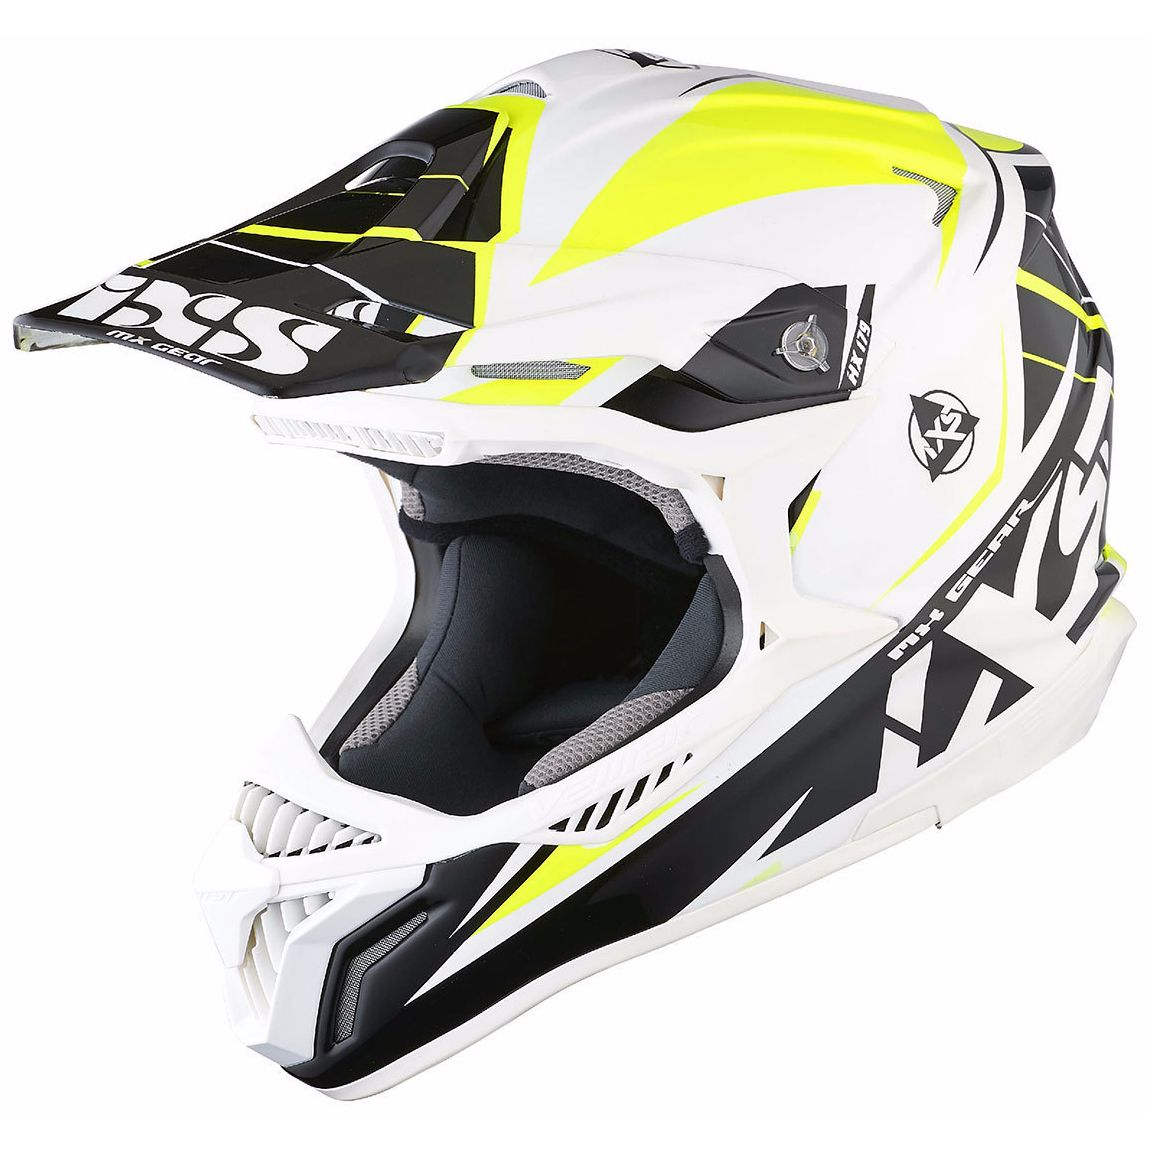 Casque Cross Ixs Hx179 Flash - Blanc Noir Jaune